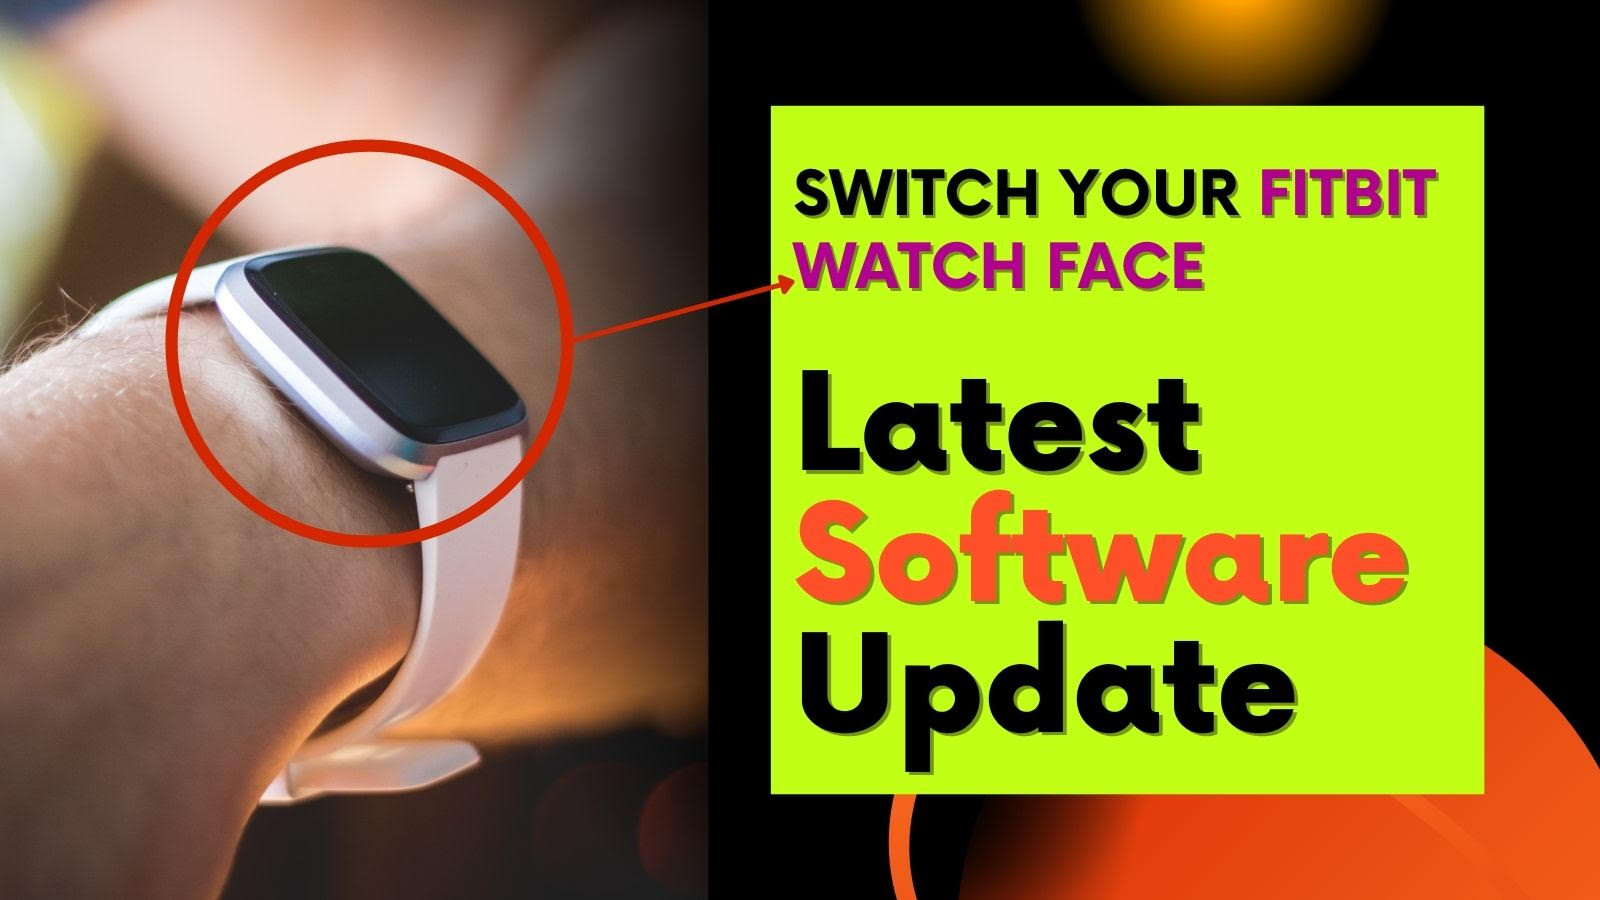 Switch Your Fitbit Watch Face